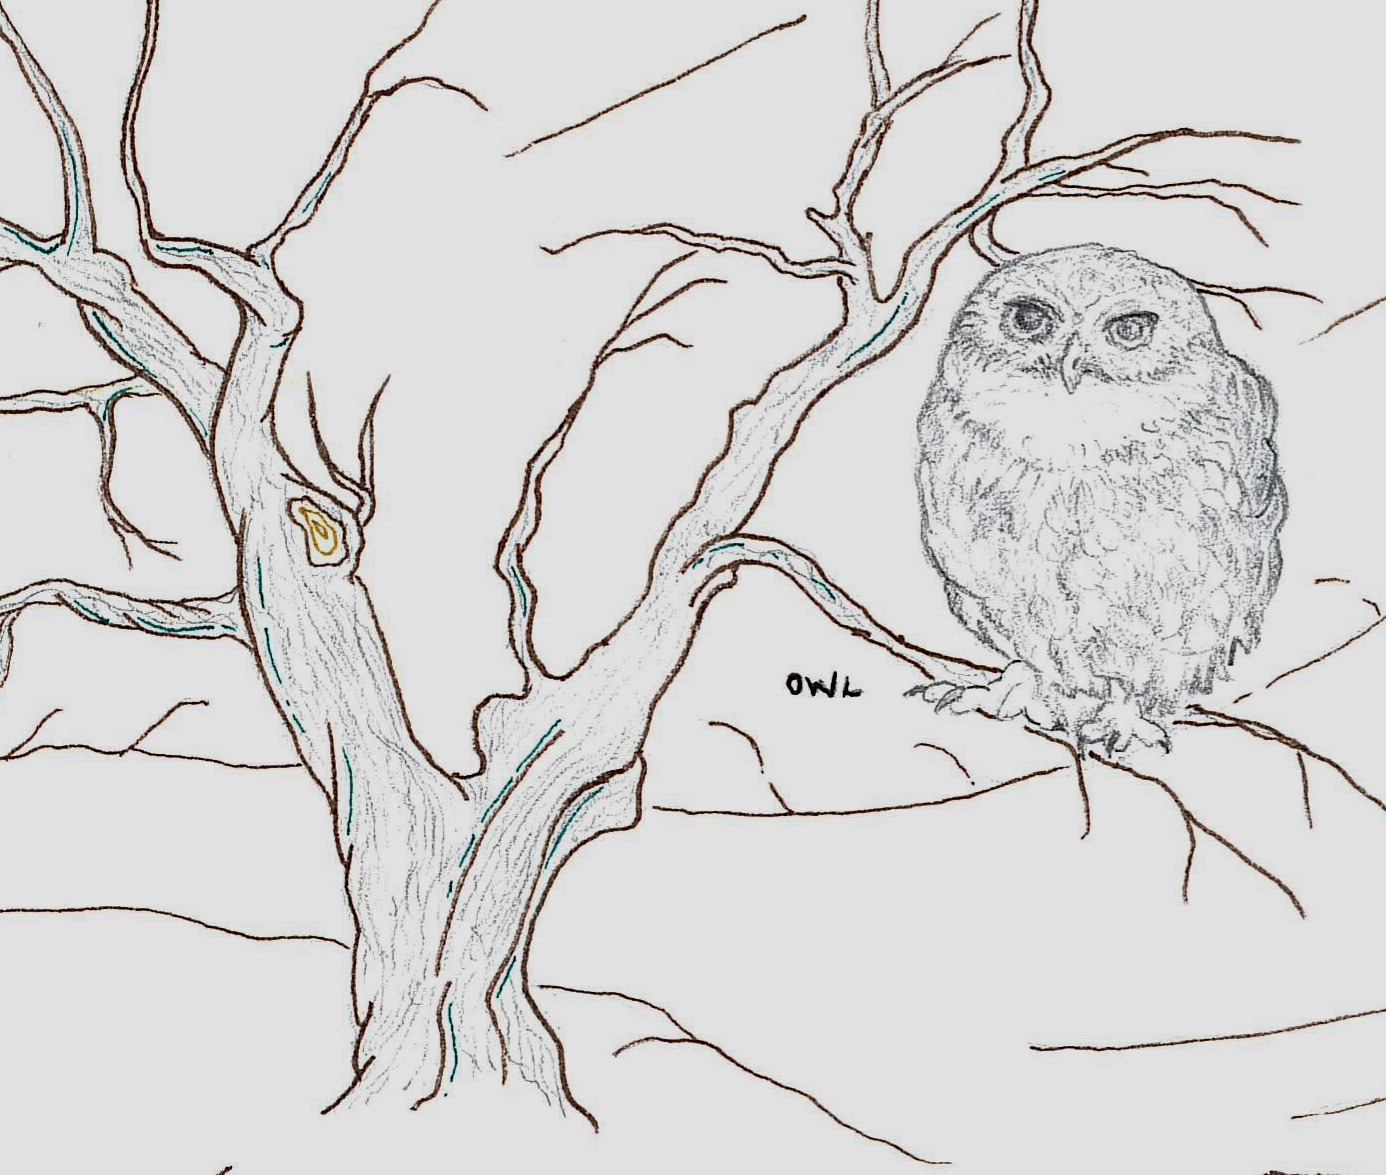 Sketch for the nature trail by Vix